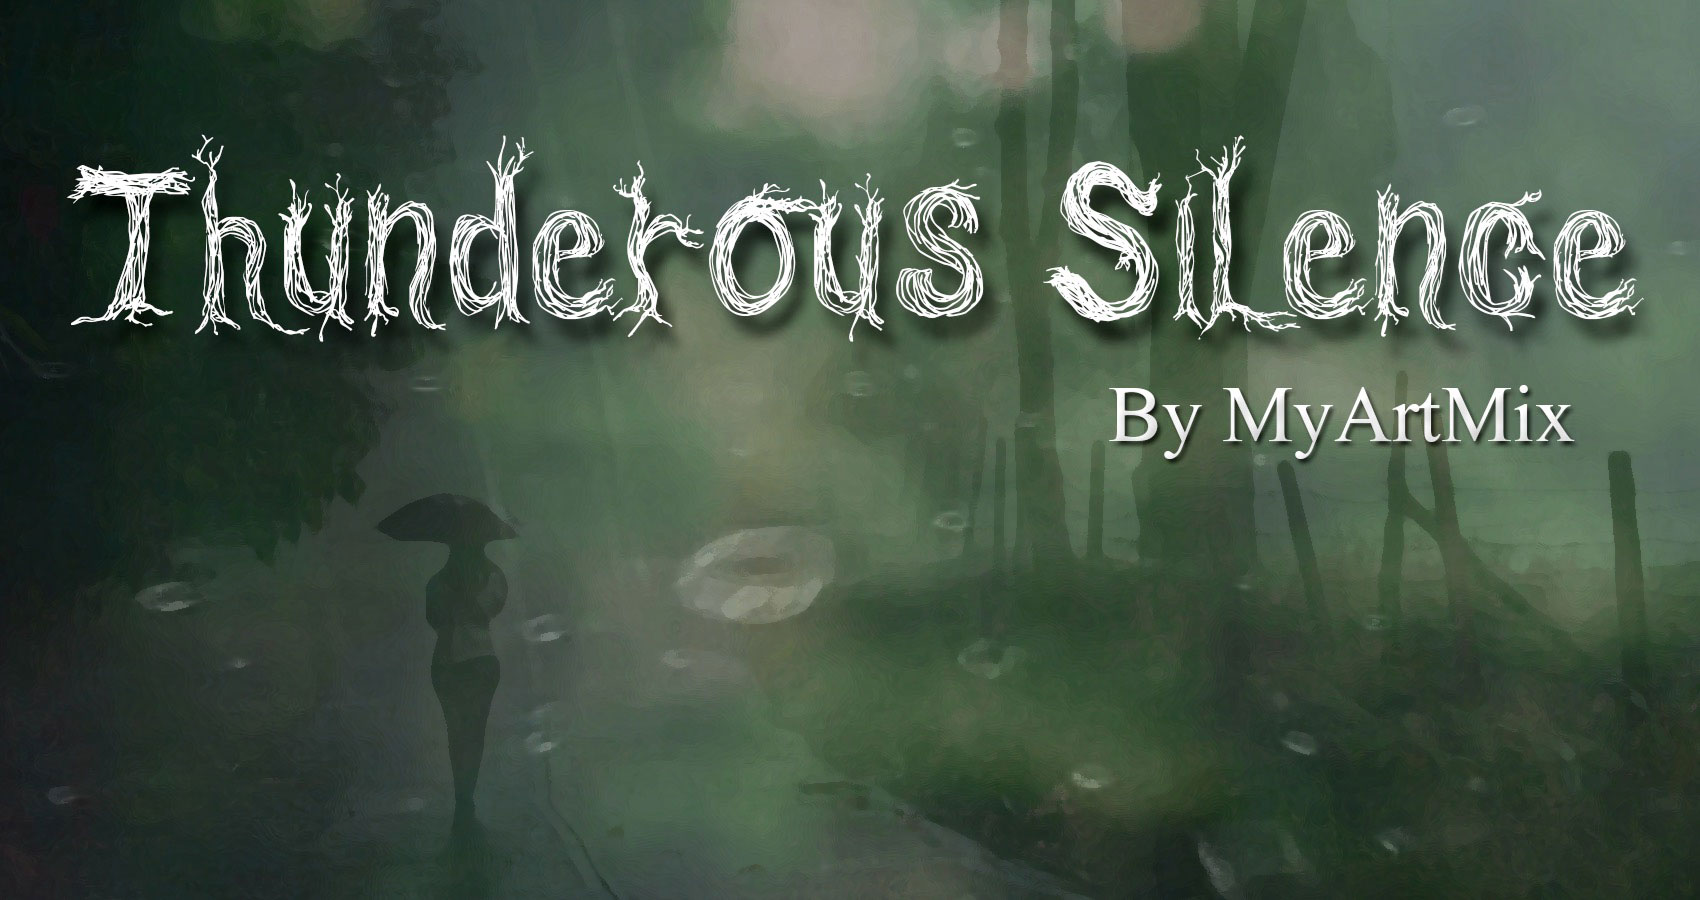 hunderous Silence by MyArtMix at Spillwords.com